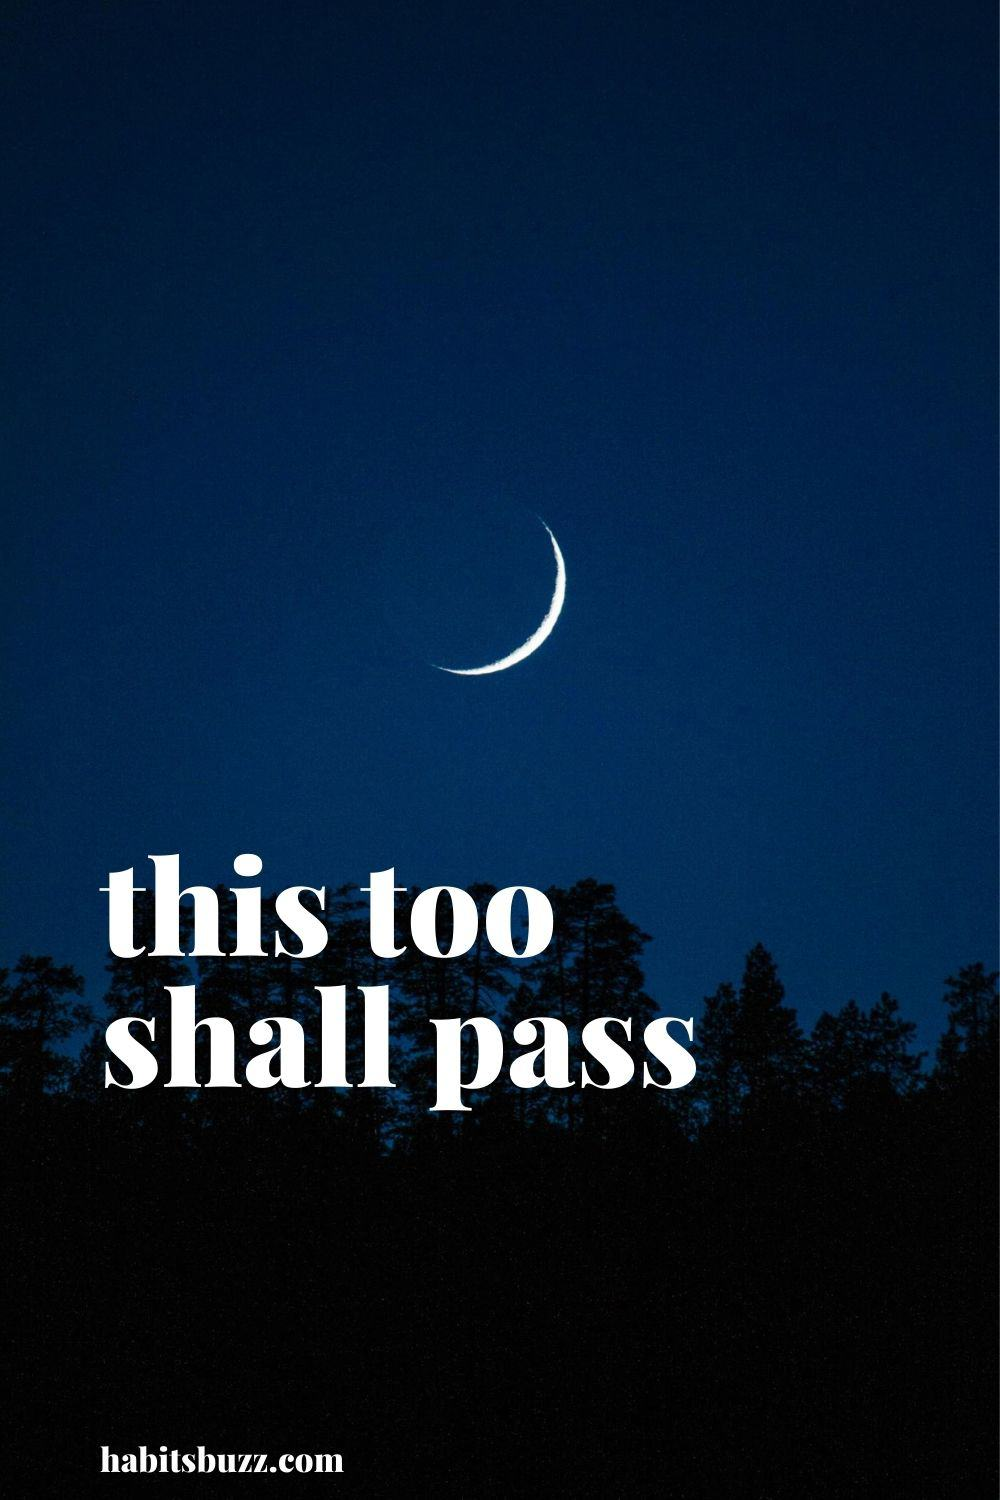 this too shall pass - mantras to get through bad days in life